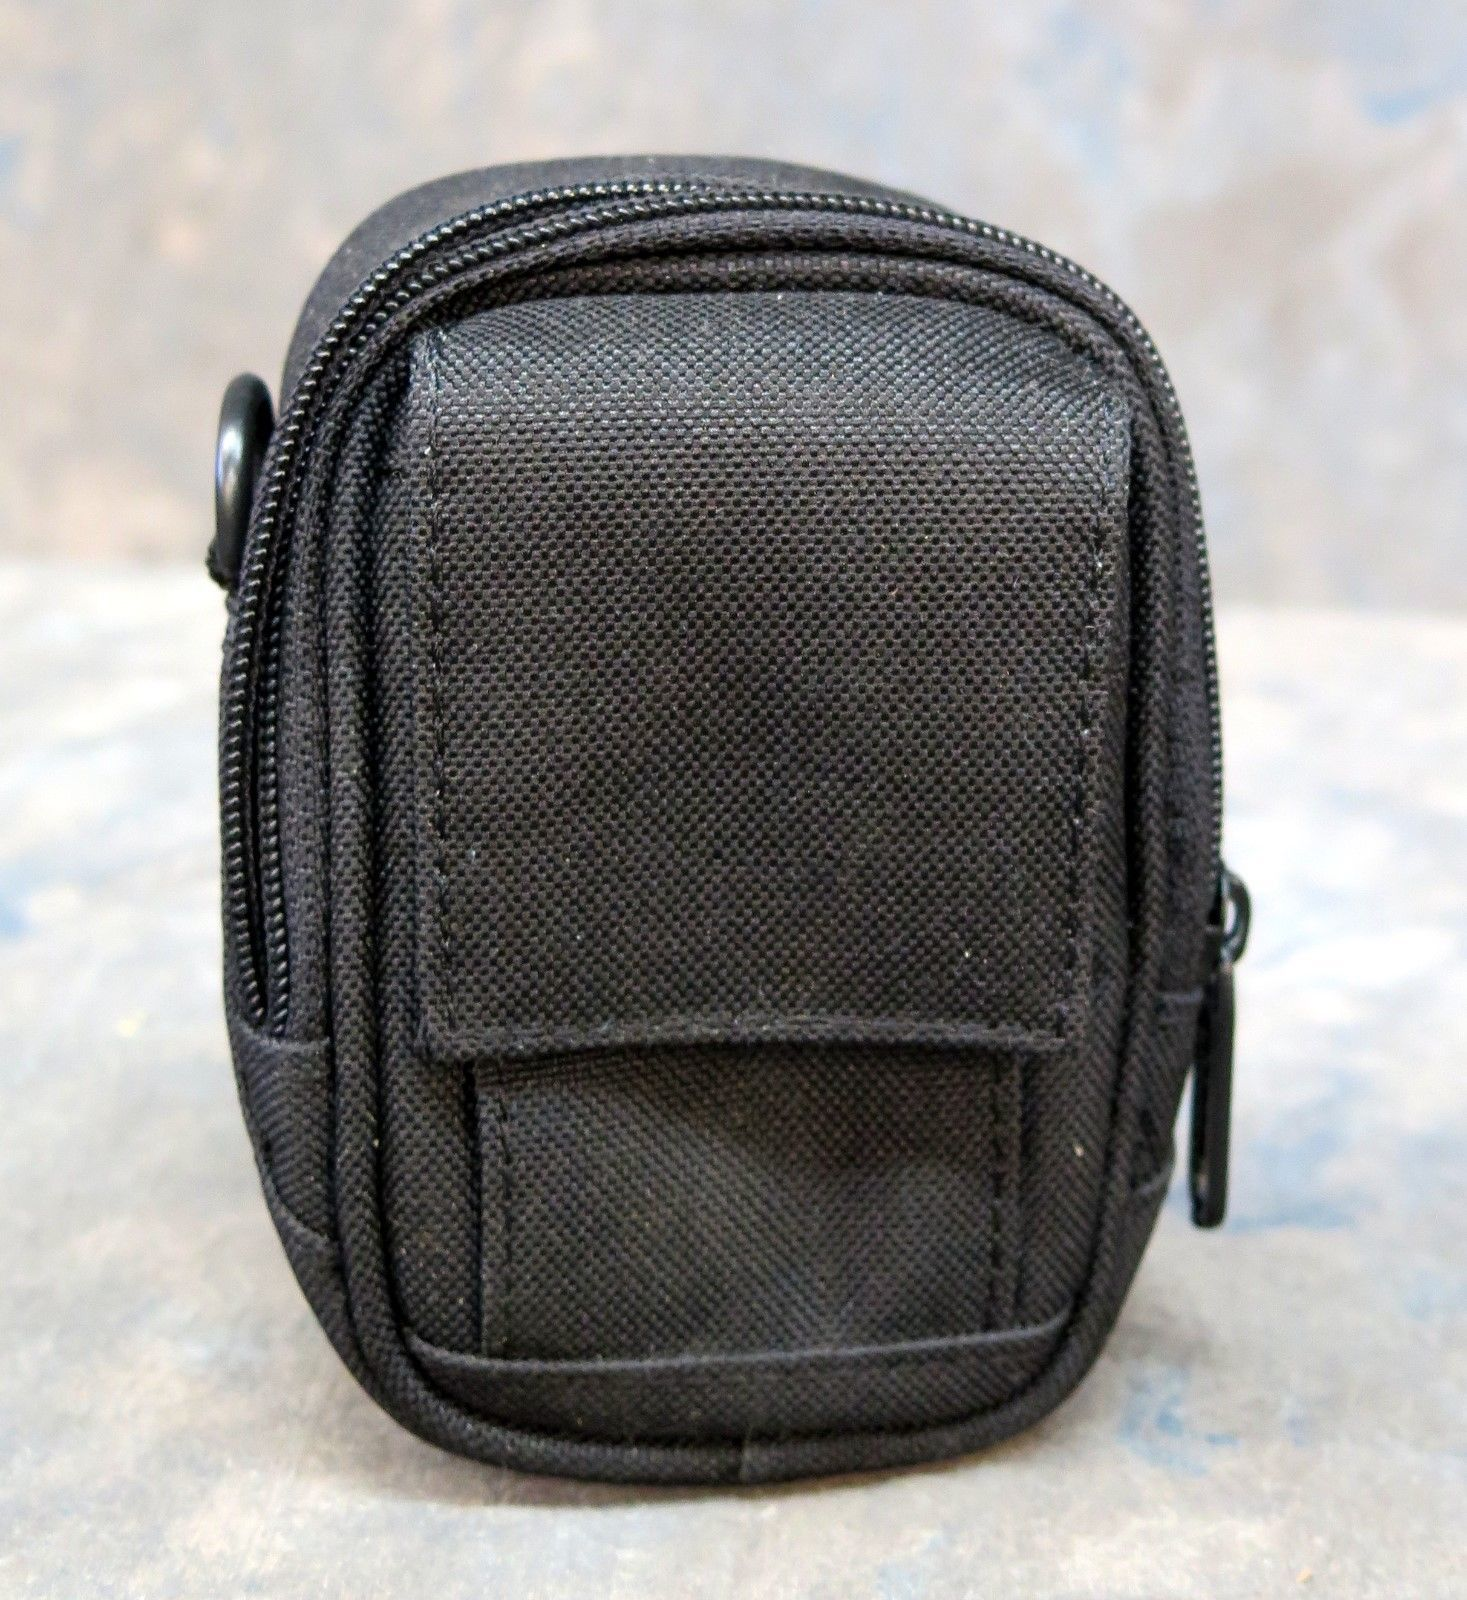 Primary image for Lowepro Small Camera Case Black